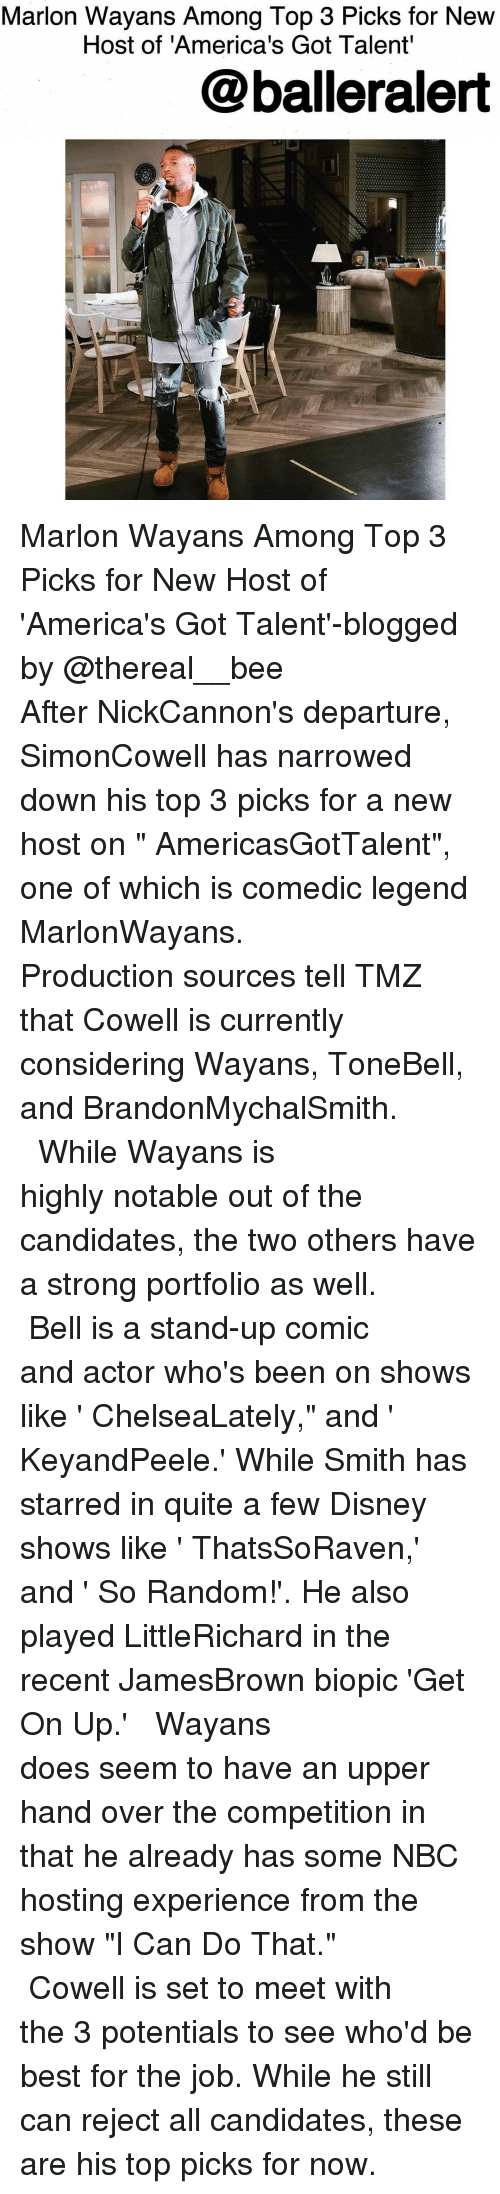 "Memes, Biopic, and 🤖: Marlon Wayans Among Top 3 Picks for New  Host of 'America's Got Talent'  balleralert Marlon Wayans Among Top 3 Picks for New Host of 'America's Got Talent'-blogged by @thereal__bee ⠀⠀⠀⠀⠀⠀⠀⠀⠀ ⠀⠀⠀⠀⠀⠀⠀⠀⠀ After NickCannon's departure, SimonCowell has narrowed down his top 3 picks for a new host on "" AmericasGotTalent"", one of which is comedic legend MarlonWayans. ⠀⠀⠀⠀⠀⠀⠀⠀⠀ ⠀⠀⠀⠀⠀⠀⠀⠀⠀ Production sources tell TMZ that Cowell is currently considering Wayans, ToneBell, and BrandonMychalSmith. ⠀⠀⠀⠀⠀⠀⠀⠀⠀ ⠀⠀⠀⠀⠀⠀⠀⠀⠀ While Wayans is highly notable out of the candidates, the two others have a strong portfolio as well. ⠀⠀⠀⠀⠀⠀⠀⠀⠀ ⠀⠀⠀⠀⠀⠀⠀⠀⠀ Bell is a stand-up comic and actor who's been on shows like ' ChelseaLately,"" and ' KeyandPeele.' While Smith has starred in quite a few Disney shows like ' ThatsSoRaven,' and ' So Random!'. He also played LittleRichard in the recent JamesBrown biopic 'Get On Up.' ⠀⠀⠀⠀⠀⠀⠀⠀⠀ ⠀⠀⠀⠀⠀⠀⠀⠀⠀ Wayans does seem to have an upper hand over the competition in that he already has some NBC hosting experience from the show ""I Can Do That."" ⠀⠀⠀⠀⠀⠀⠀⠀⠀ ⠀⠀⠀⠀⠀⠀⠀⠀⠀ Cowell is set to meet with the 3 potentials to see who'd be best for the job. While he still can reject all candidates, these are his top picks for now."